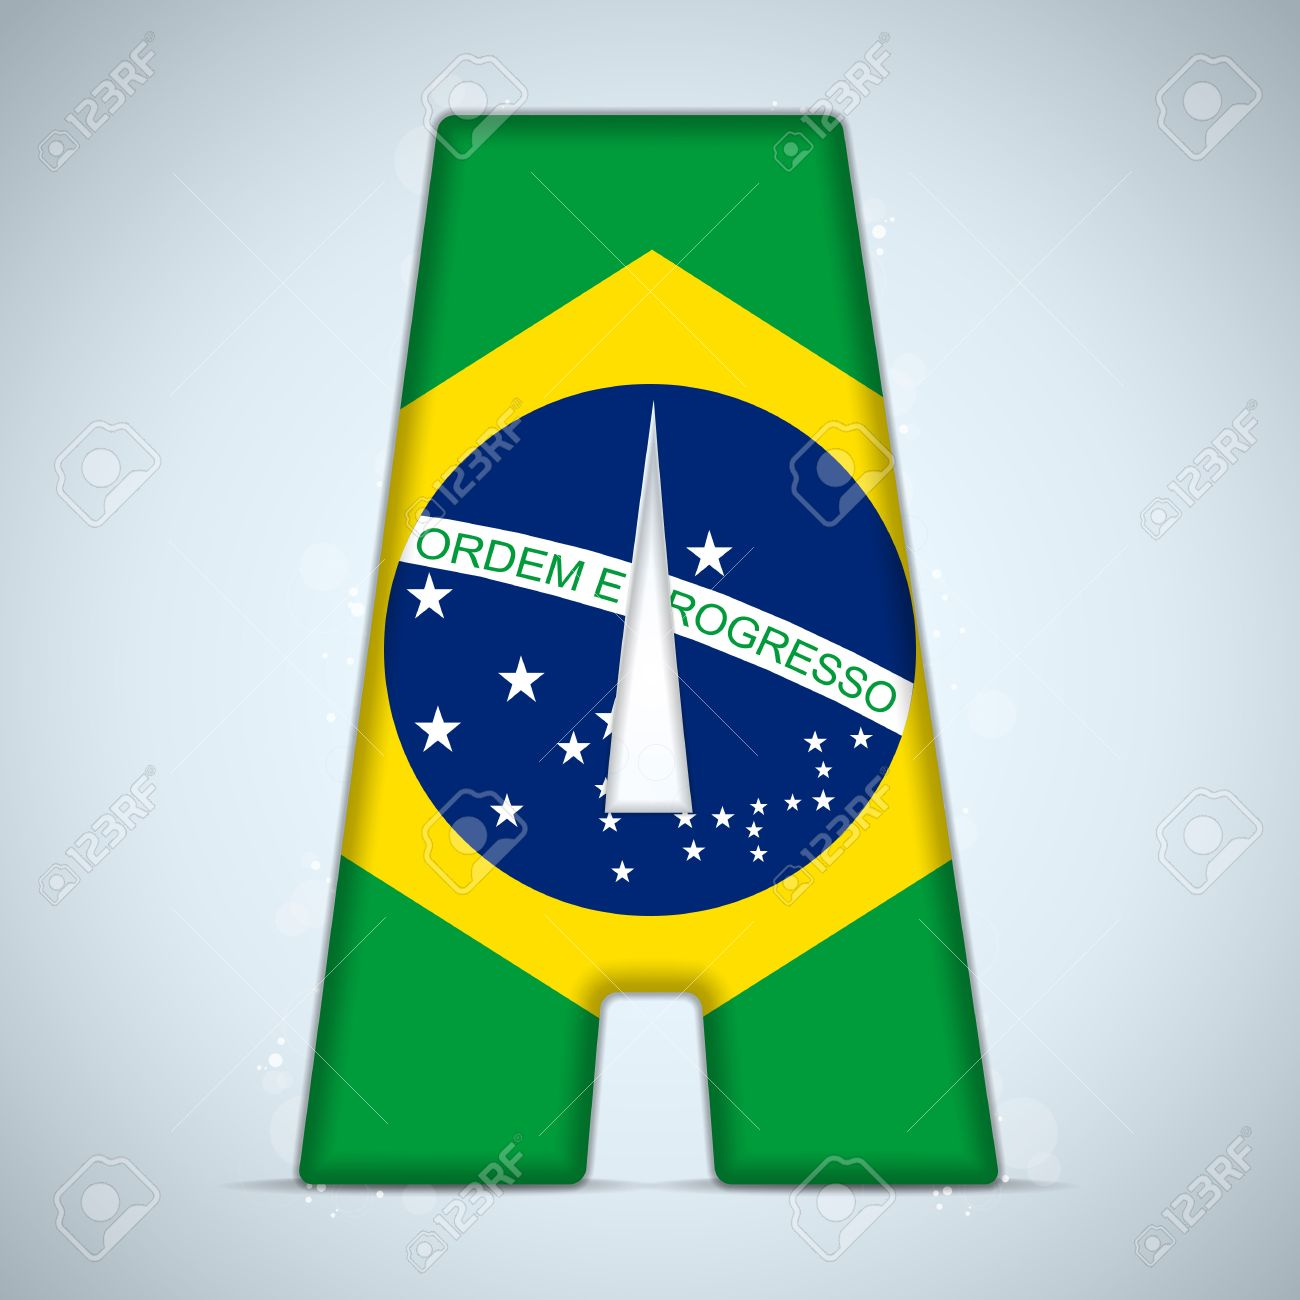 Flag alphabet letters clipart image library Brazil Flag Brazilian Alphabet Letters Words Royalty Free Cliparts ... image library